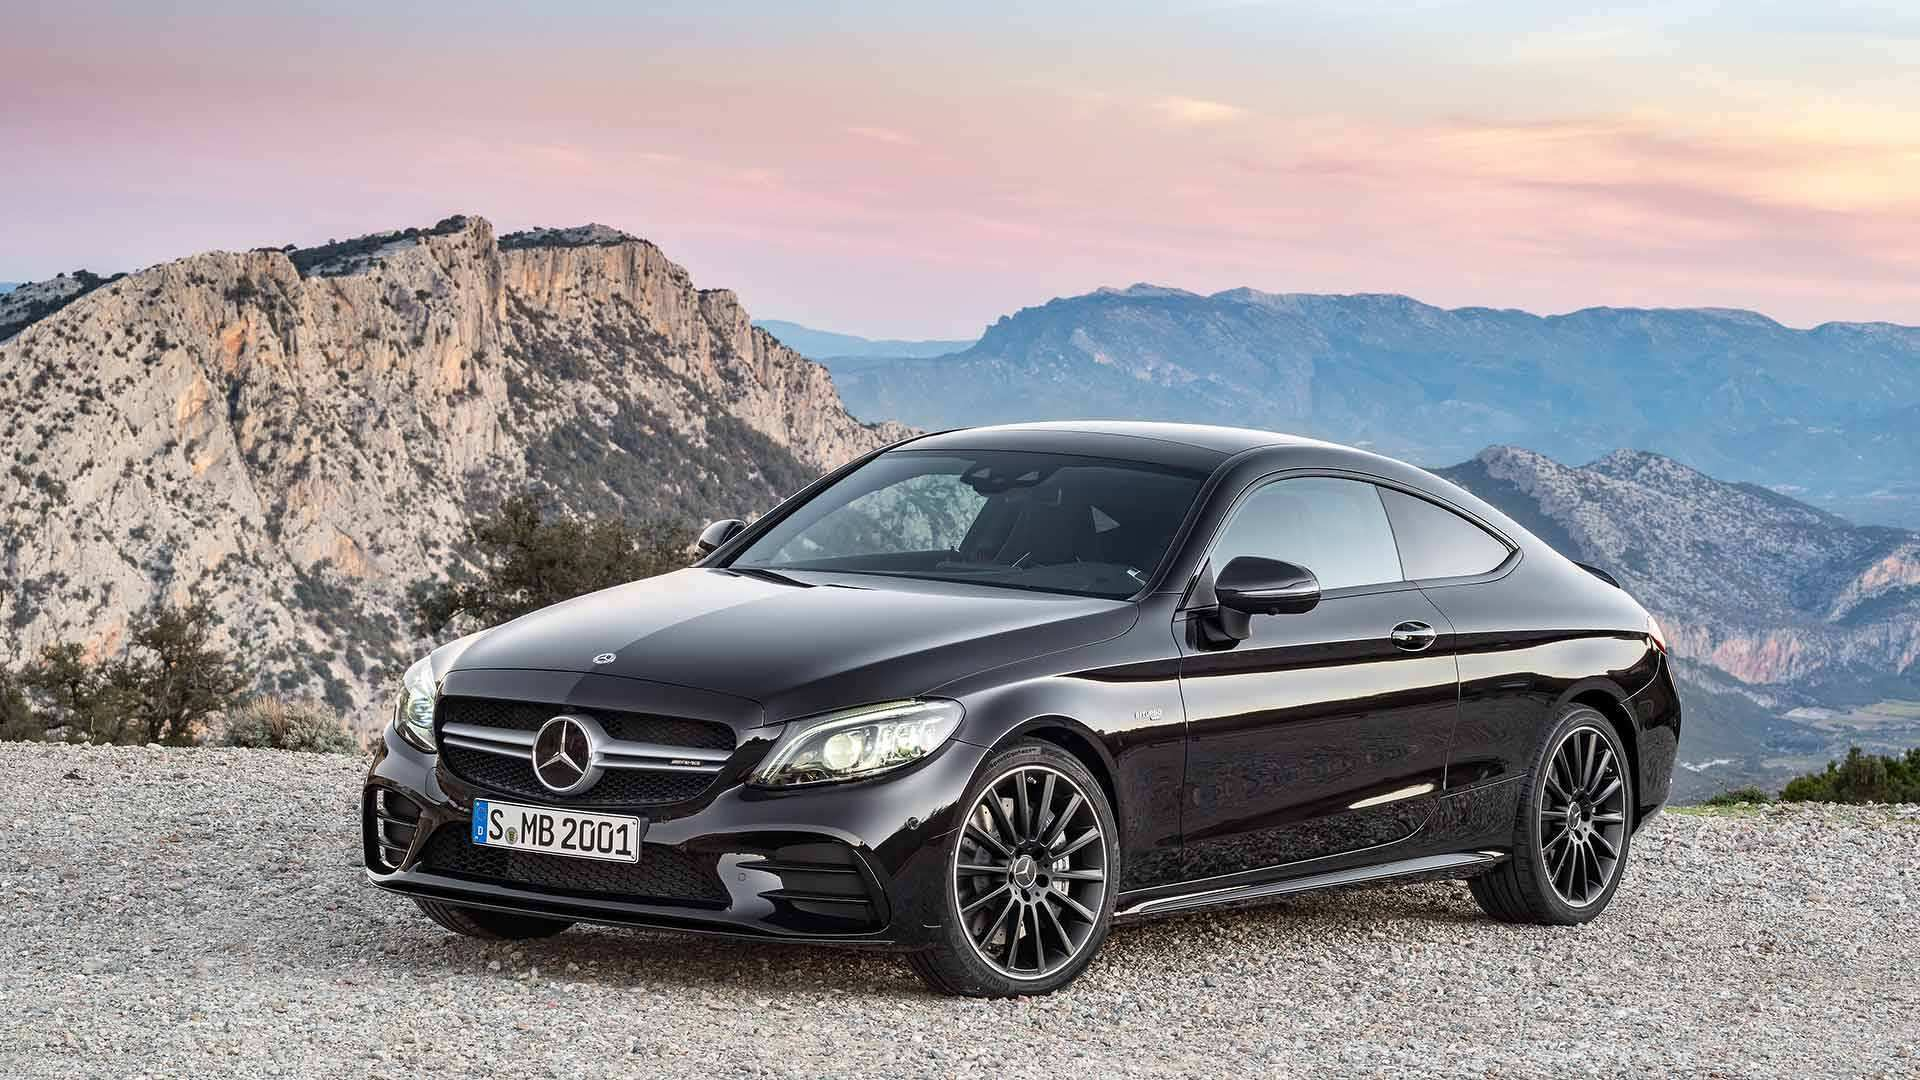 24 Great 2019 Mercedes C Class Facelift Price Exterior and Interior with 2019 Mercedes C Class Facelift Price